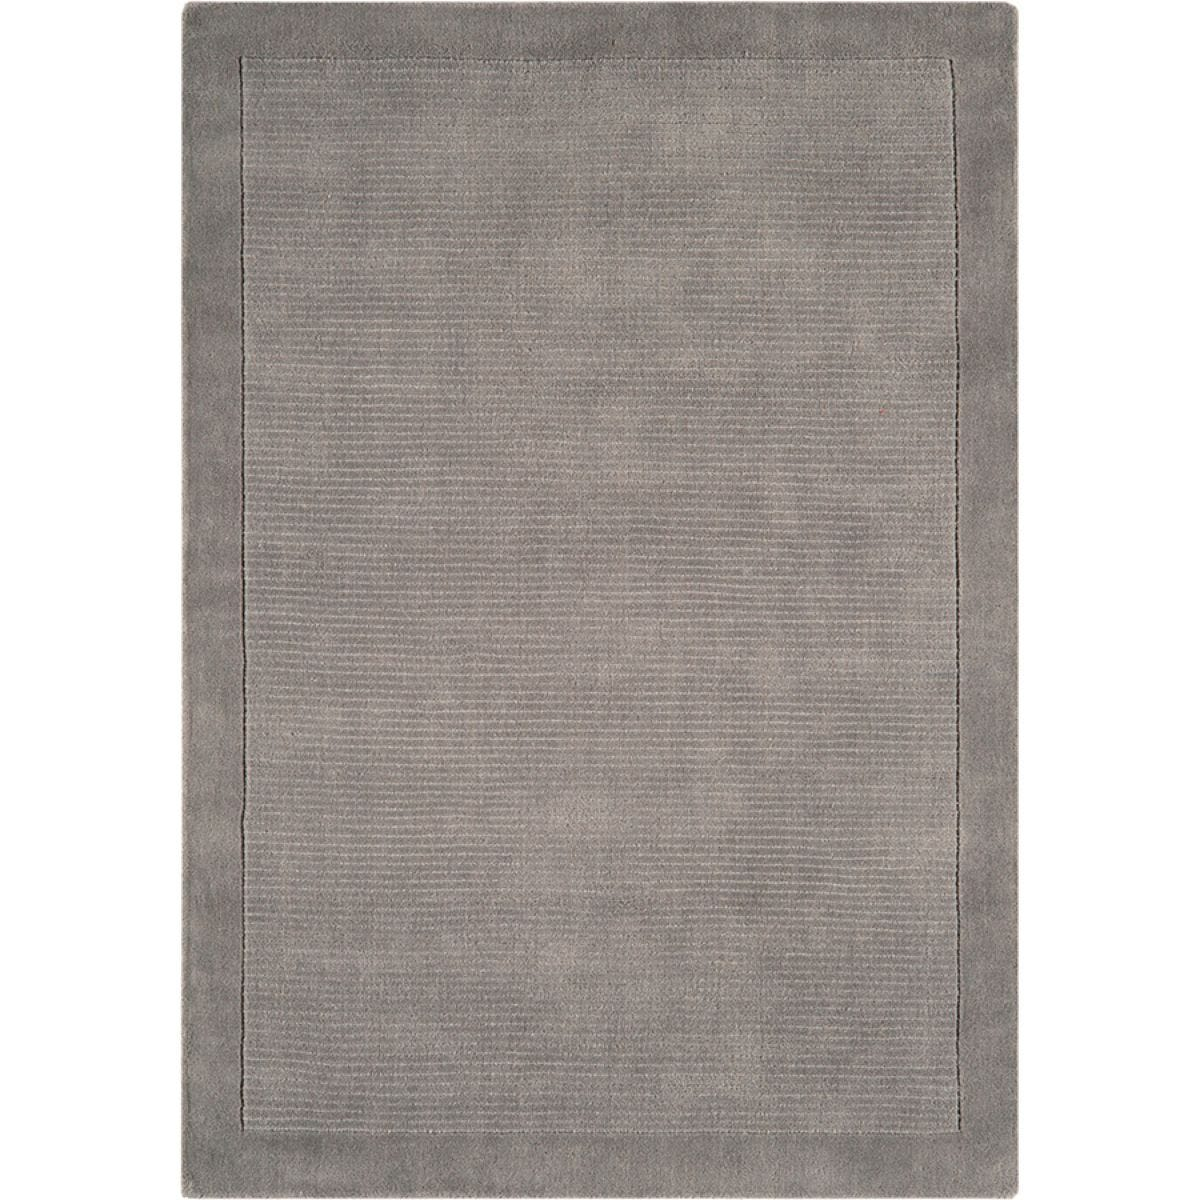 Asiatic York Handloom Rug, 80x150cm Grey